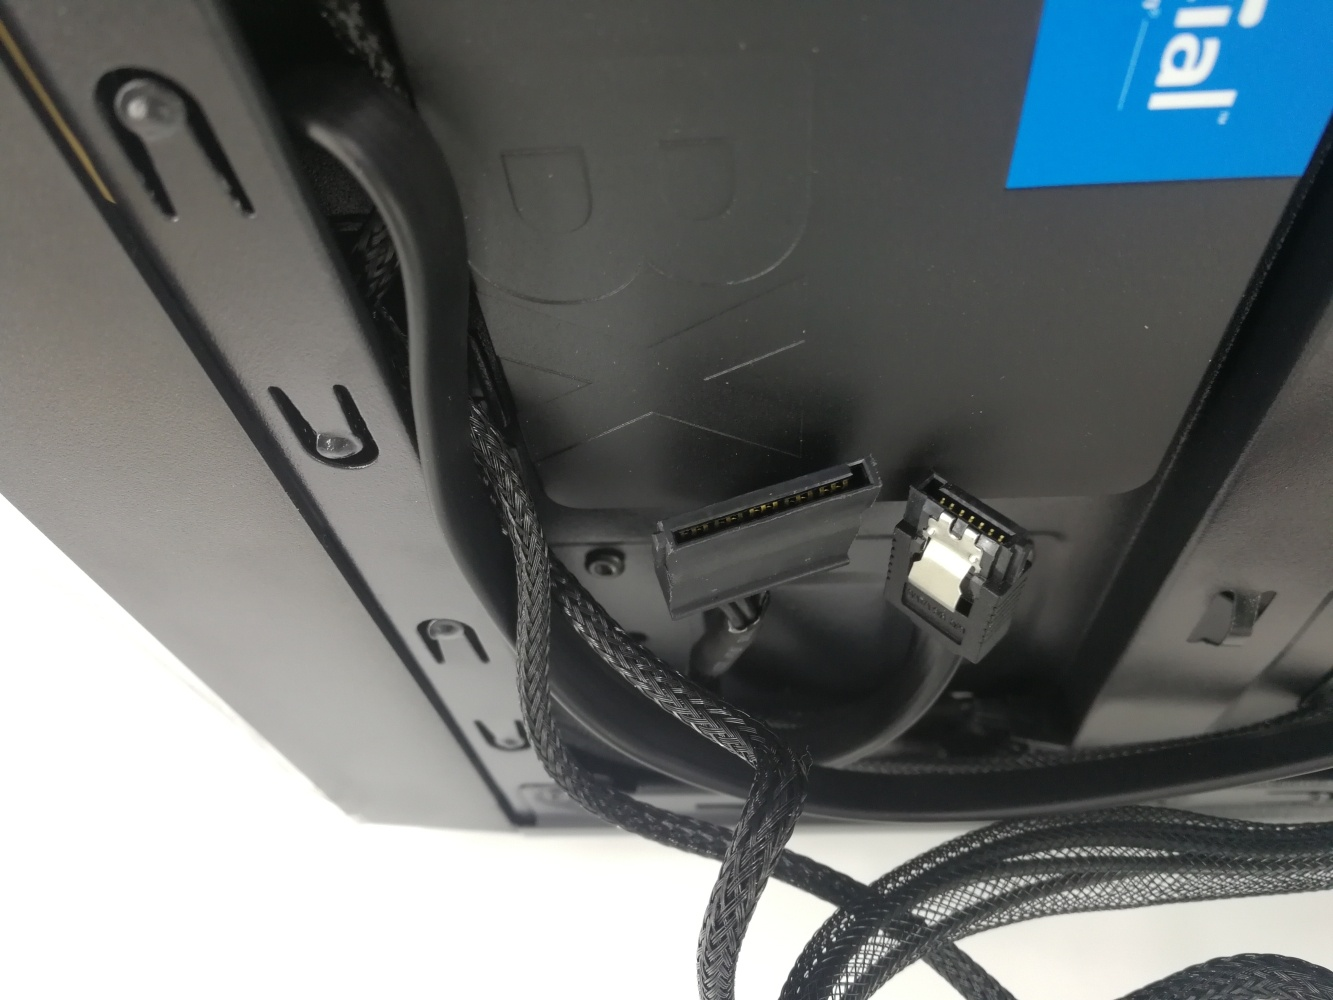 fa3f11277 You ll find the larger connection of the two is daisy changed into the same  cable that connects to the original SSD in the system